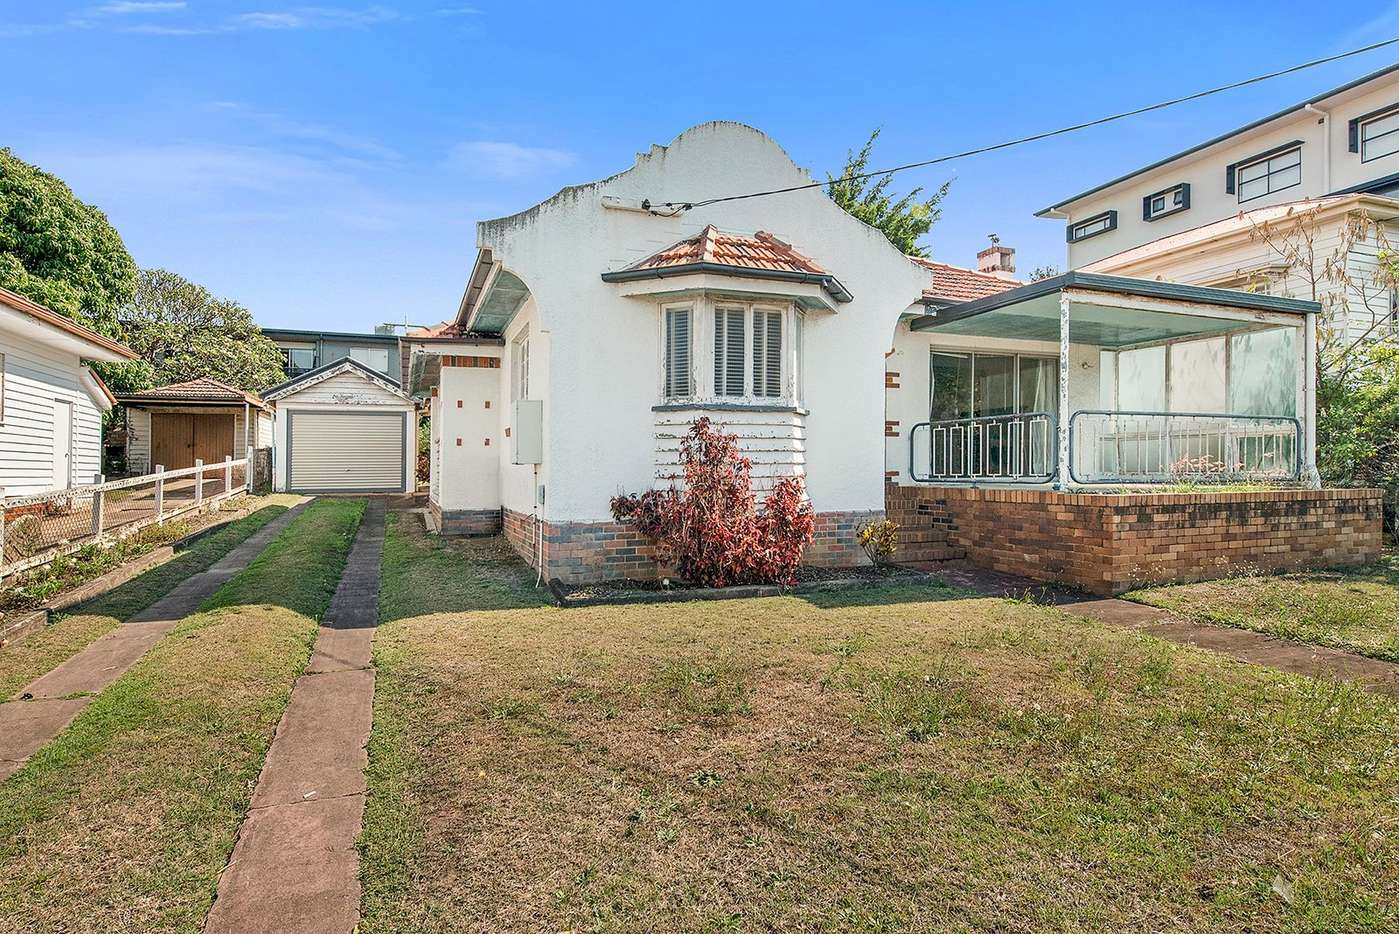 Main view of Homely house listing, 16 Colton Avenue, Lutwyche, QLD 4030